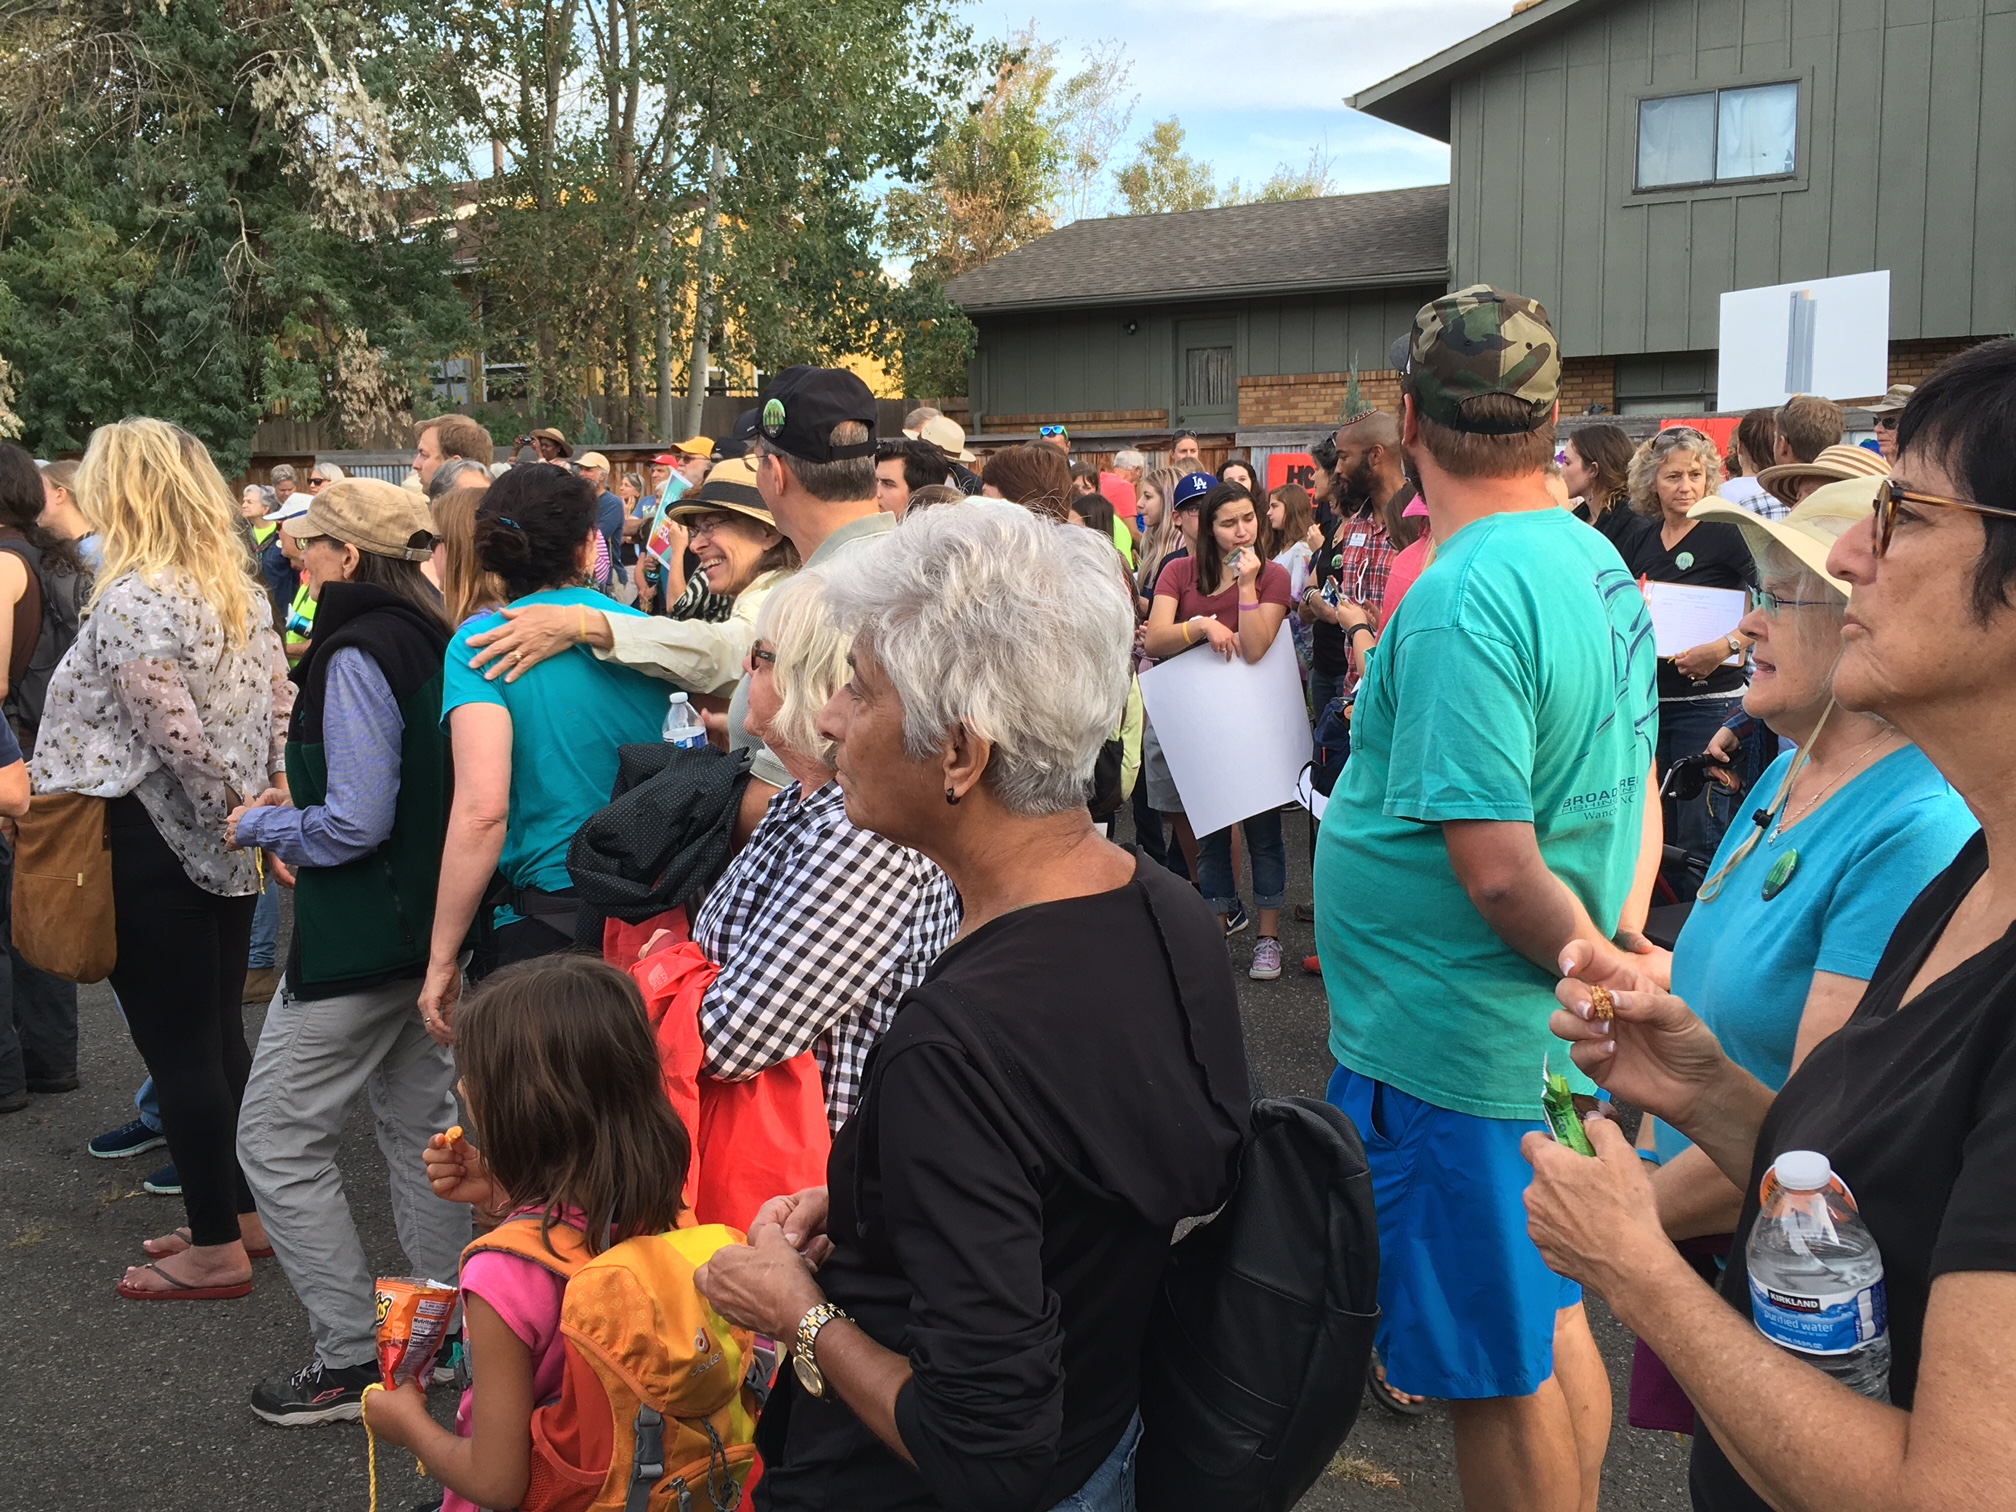 Walk for Unity brings Boulder religious communities together